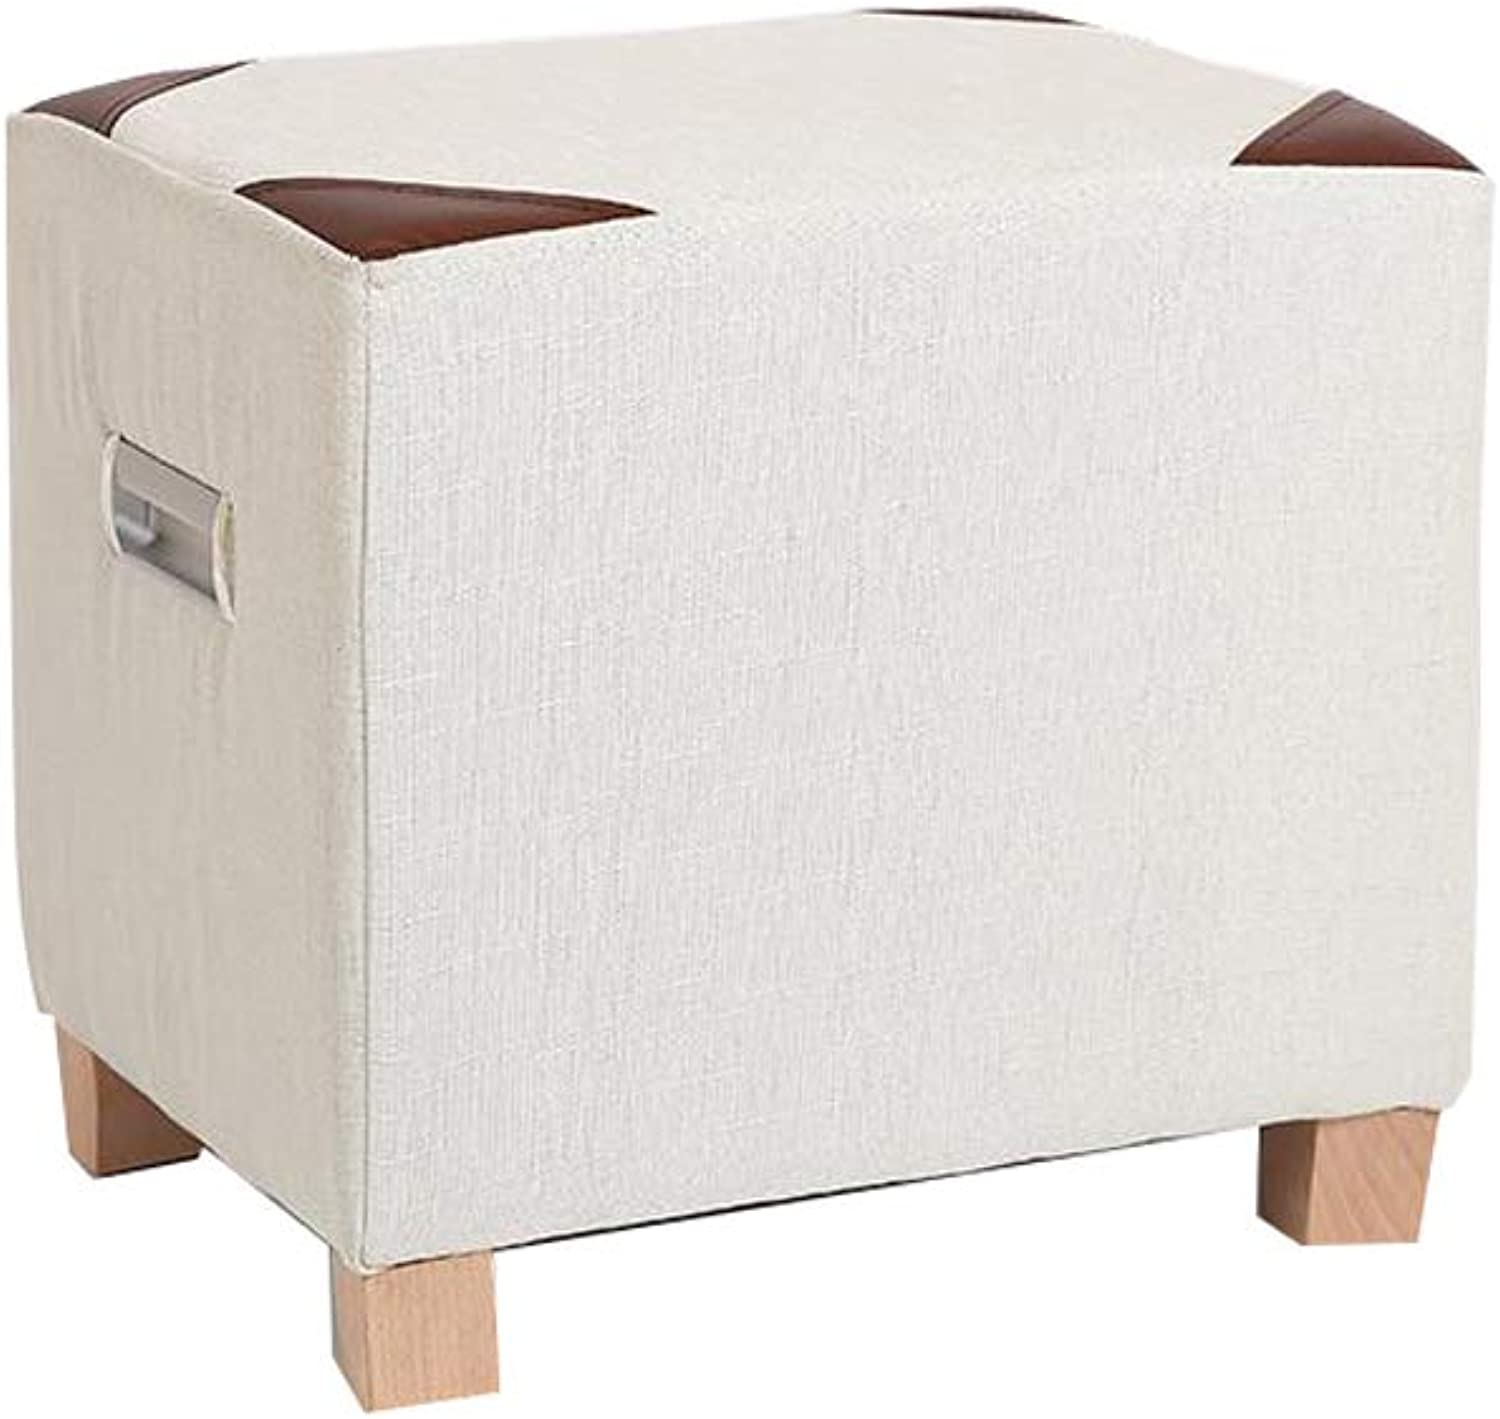 LPD Brands Low Stool Small Stool Sofa Stool Small Bench Leather Stool Solid Wood Change shoes Bench (color   White)